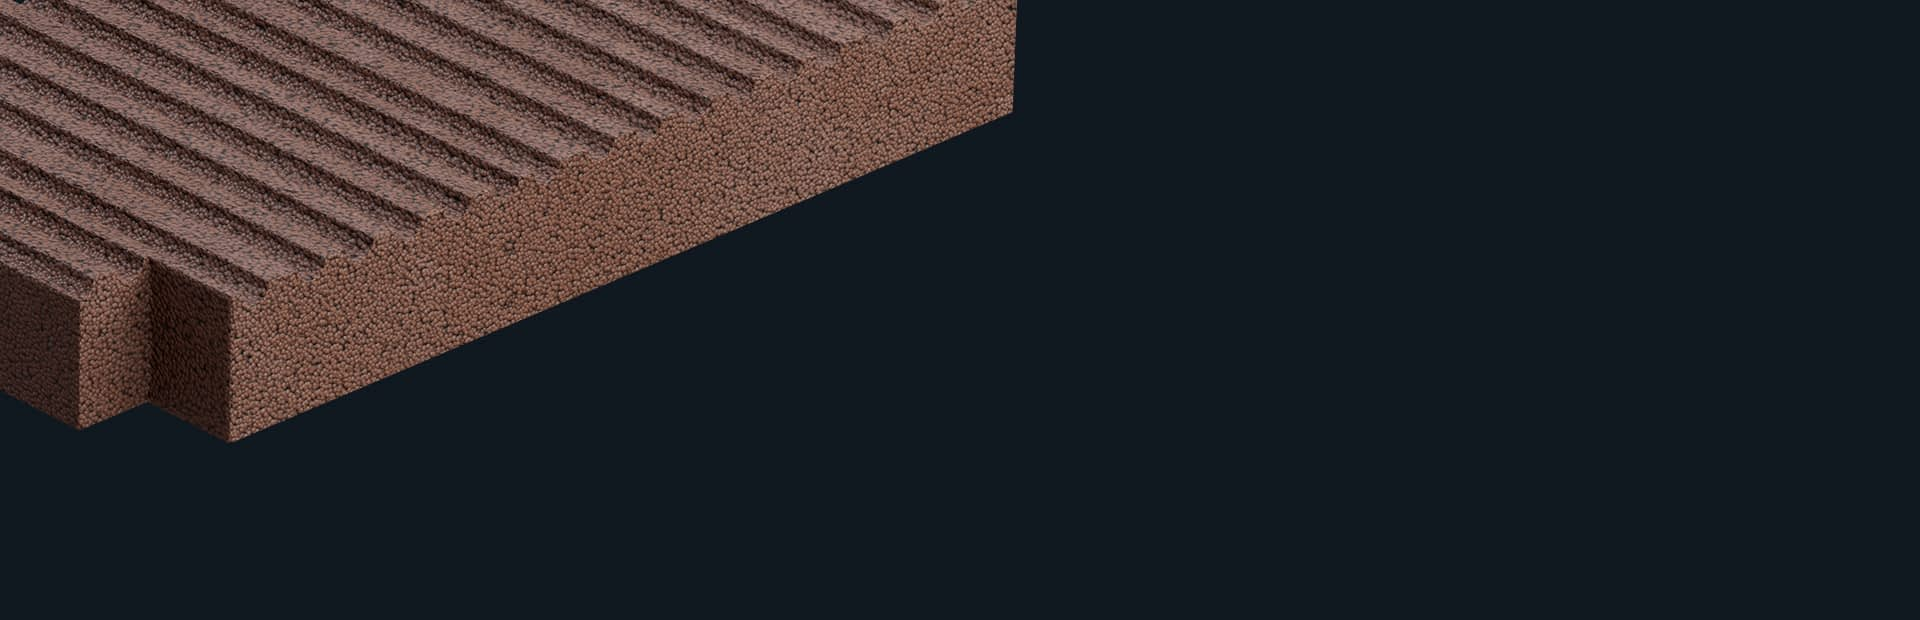 tiantie-group_products_sound-absorbing-panels_separator-image_1920x620